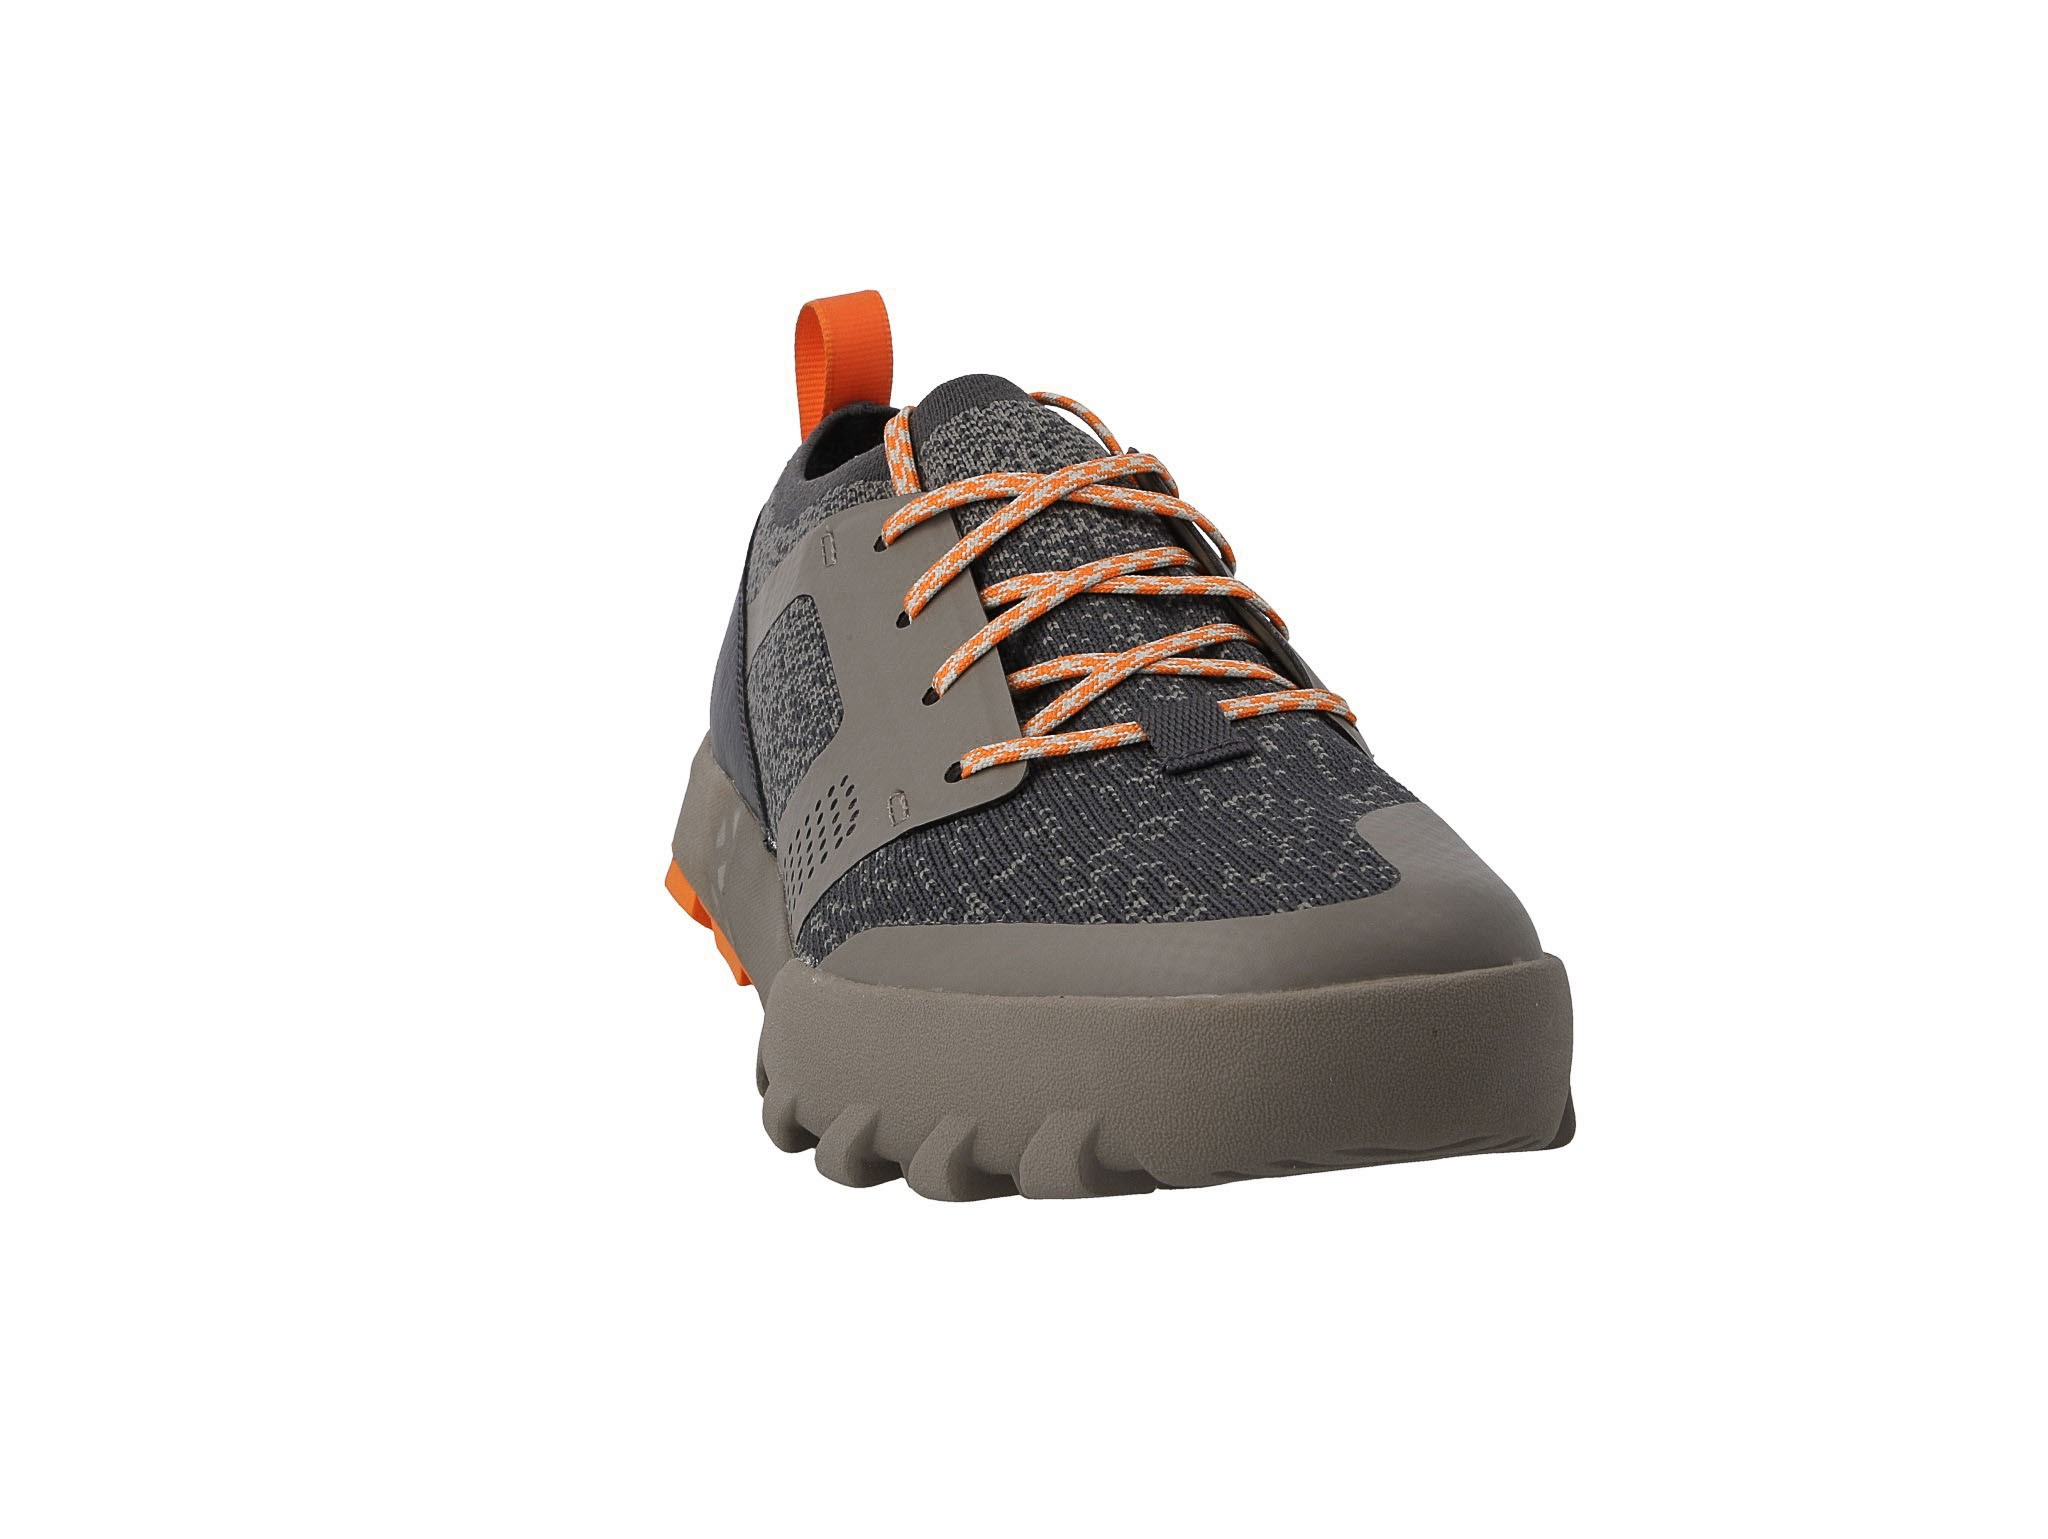 Helly Hansen Bakancs Loke Dash 114 04.981 • Modivo.hu